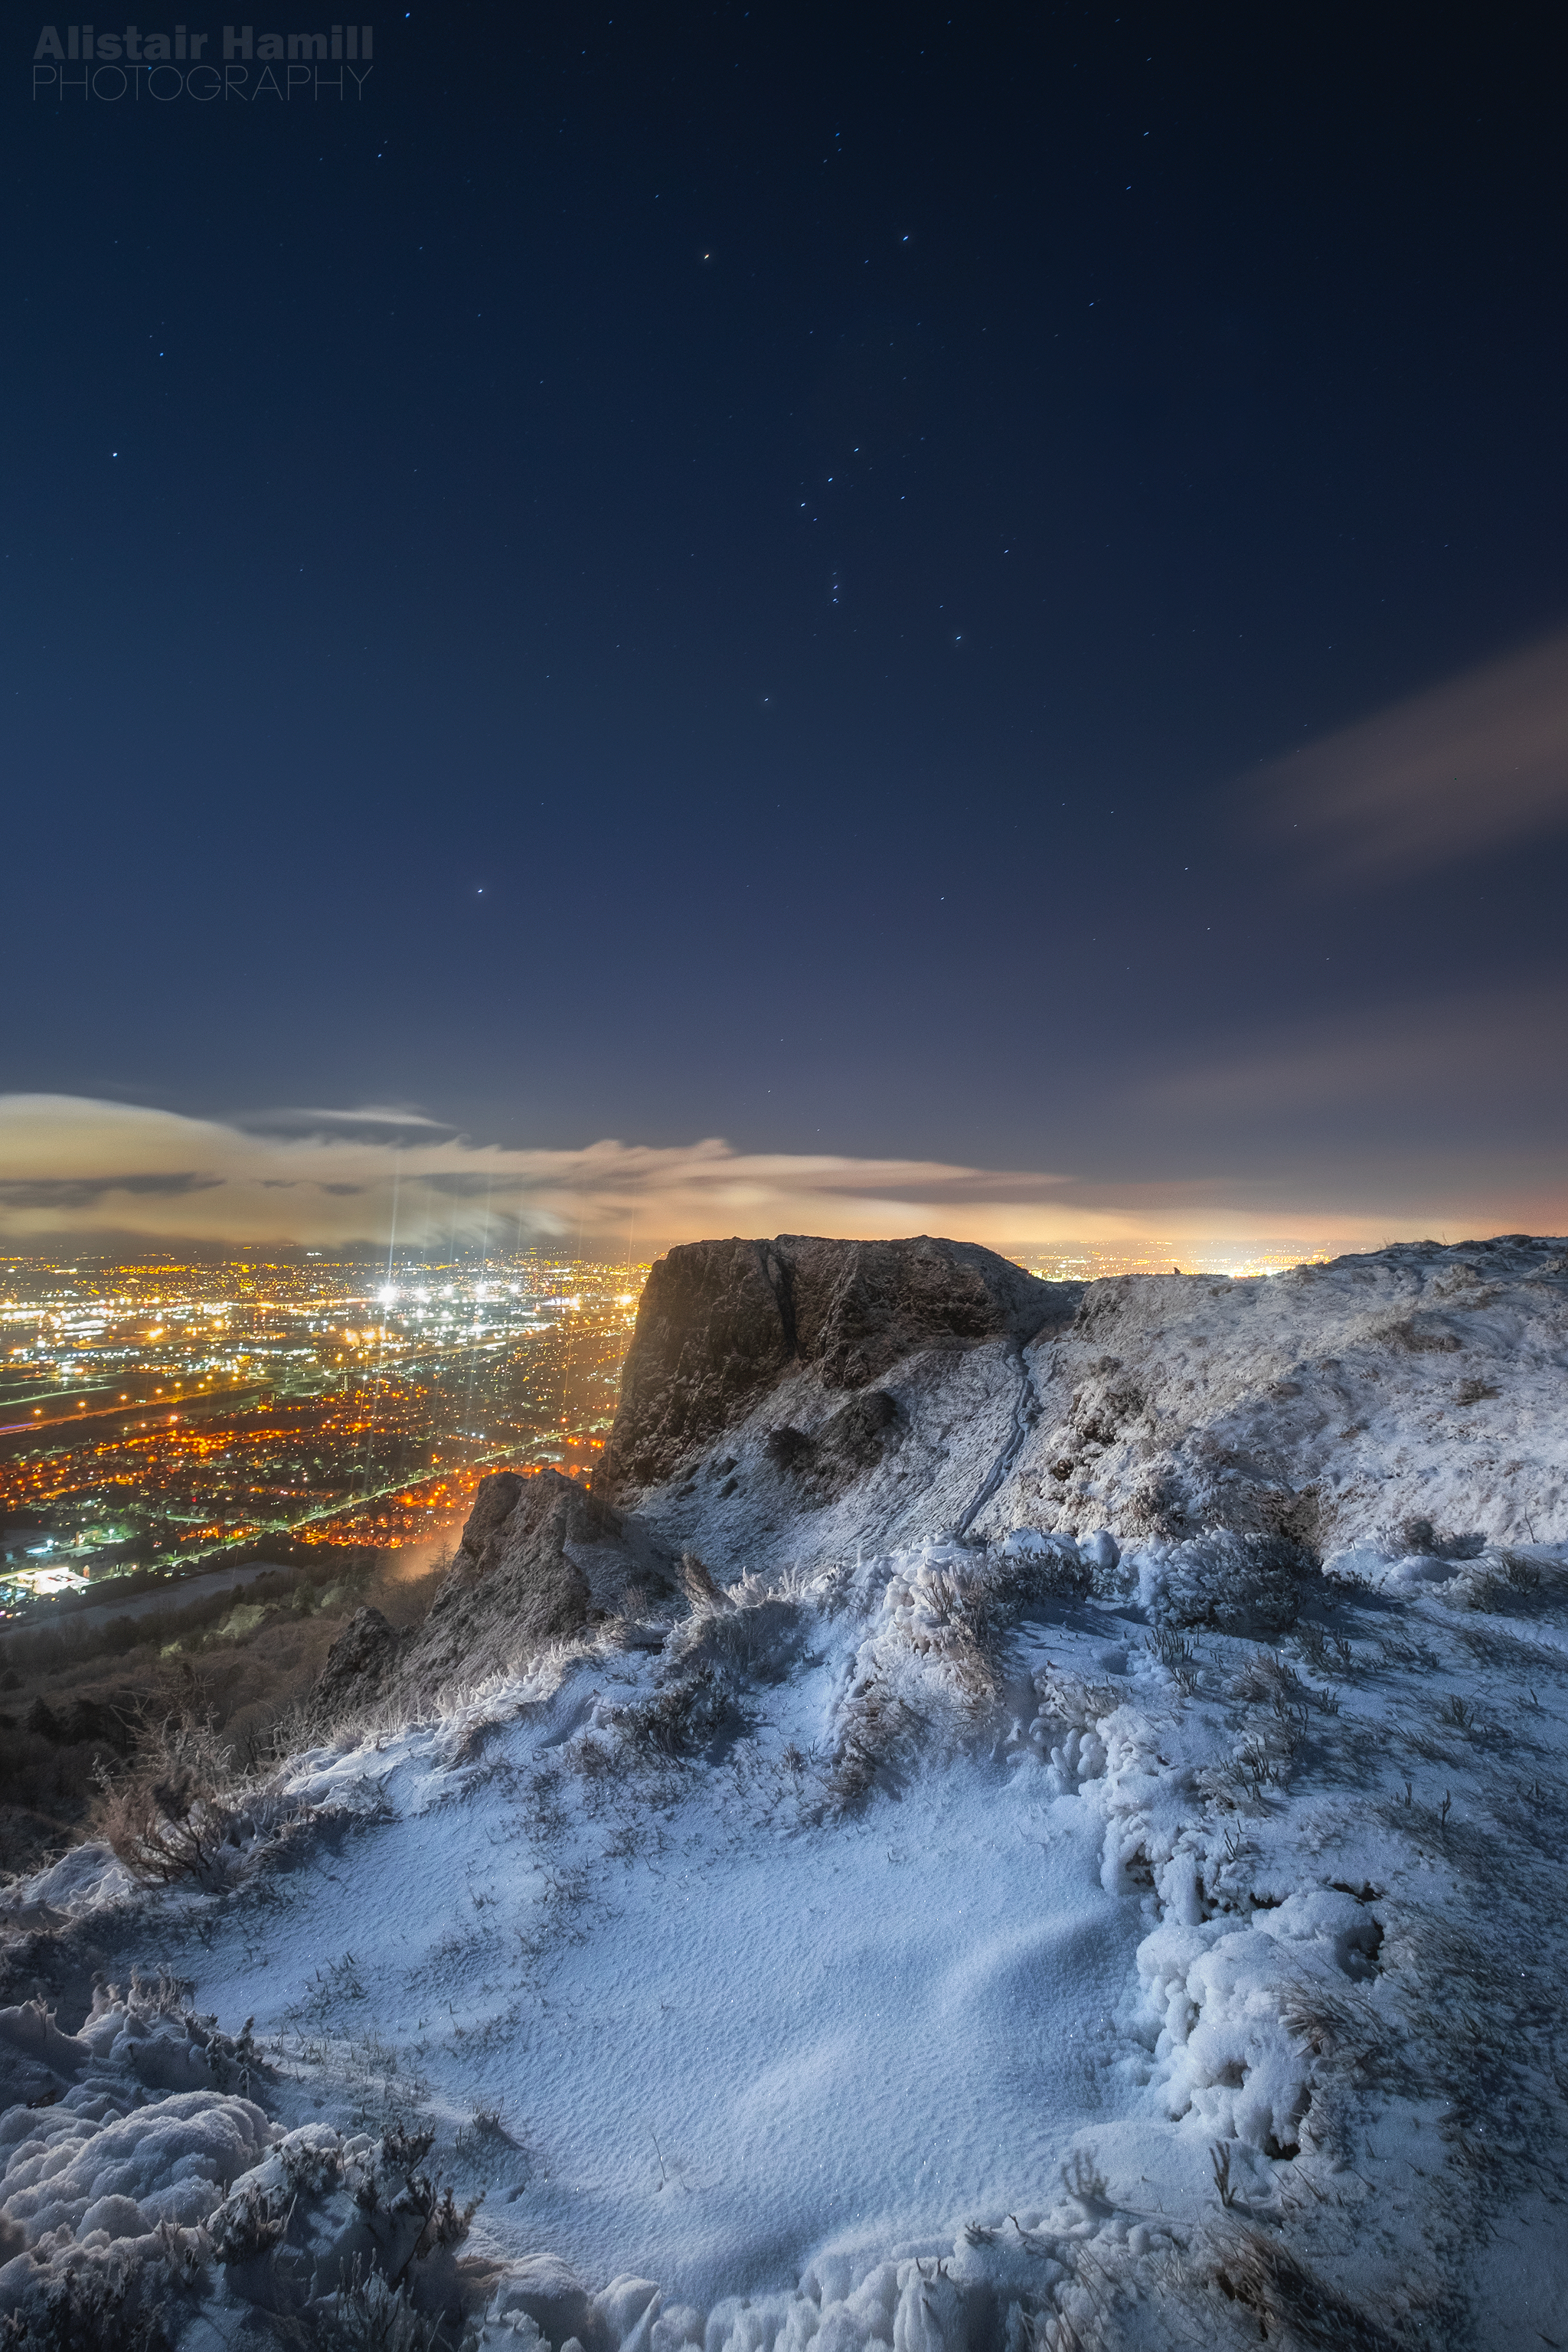 Orion above a snowy Cavehill